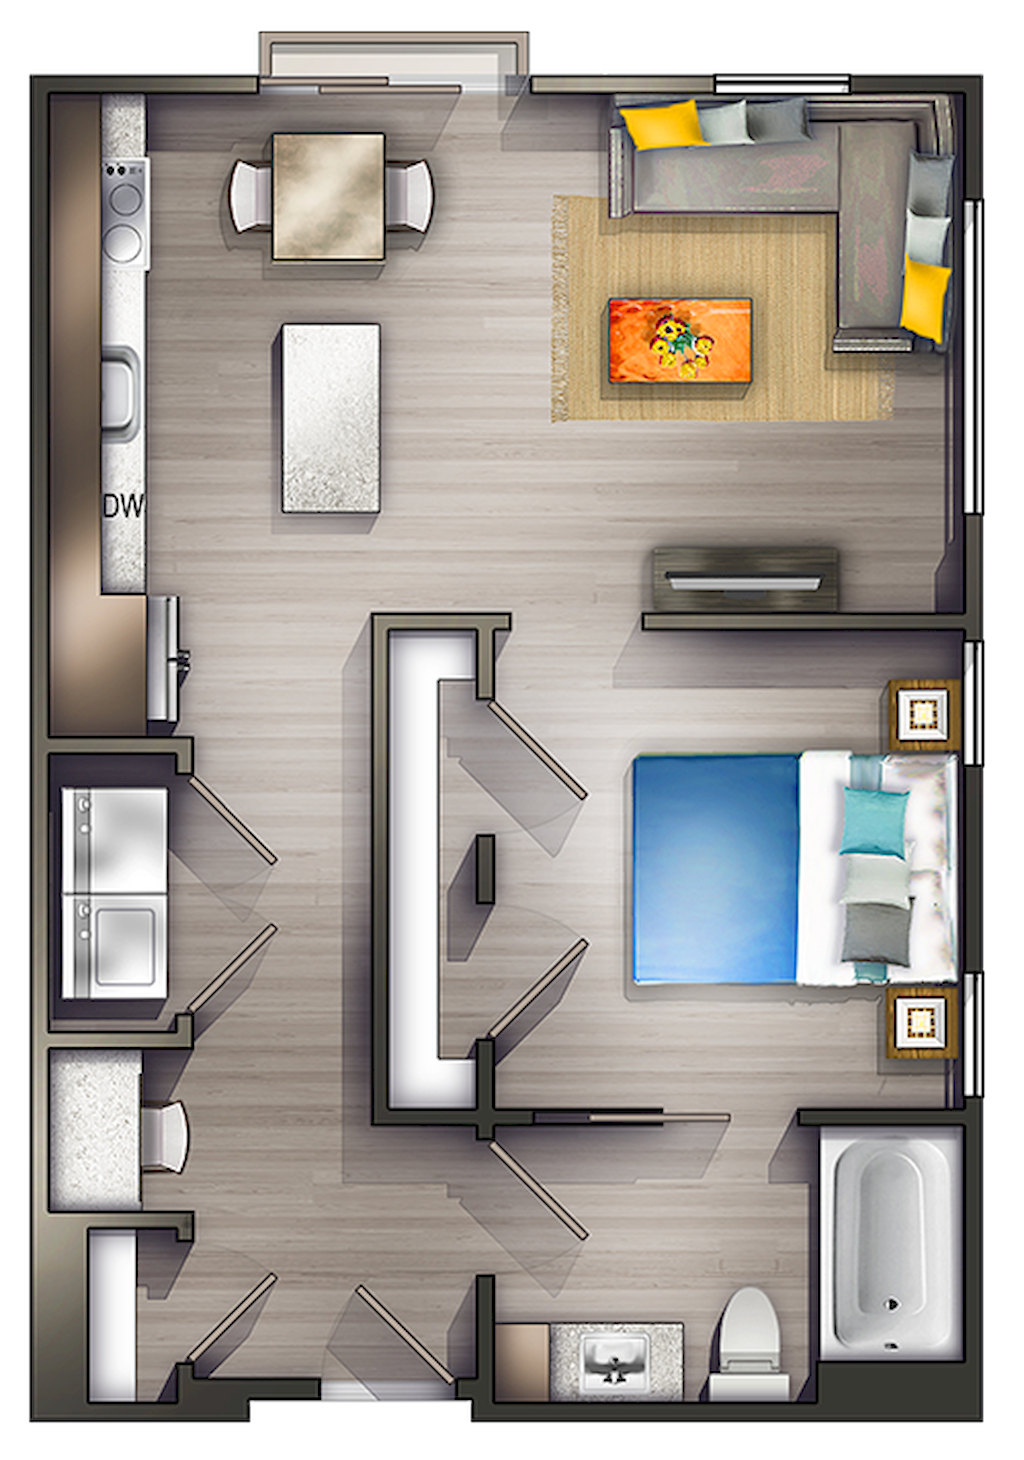 100 Small Studio Apartment Layout Design Ideas Home Design Plantas De Estudios Layout De Apartamento Layout De Um Apartamento Estilo Estudio